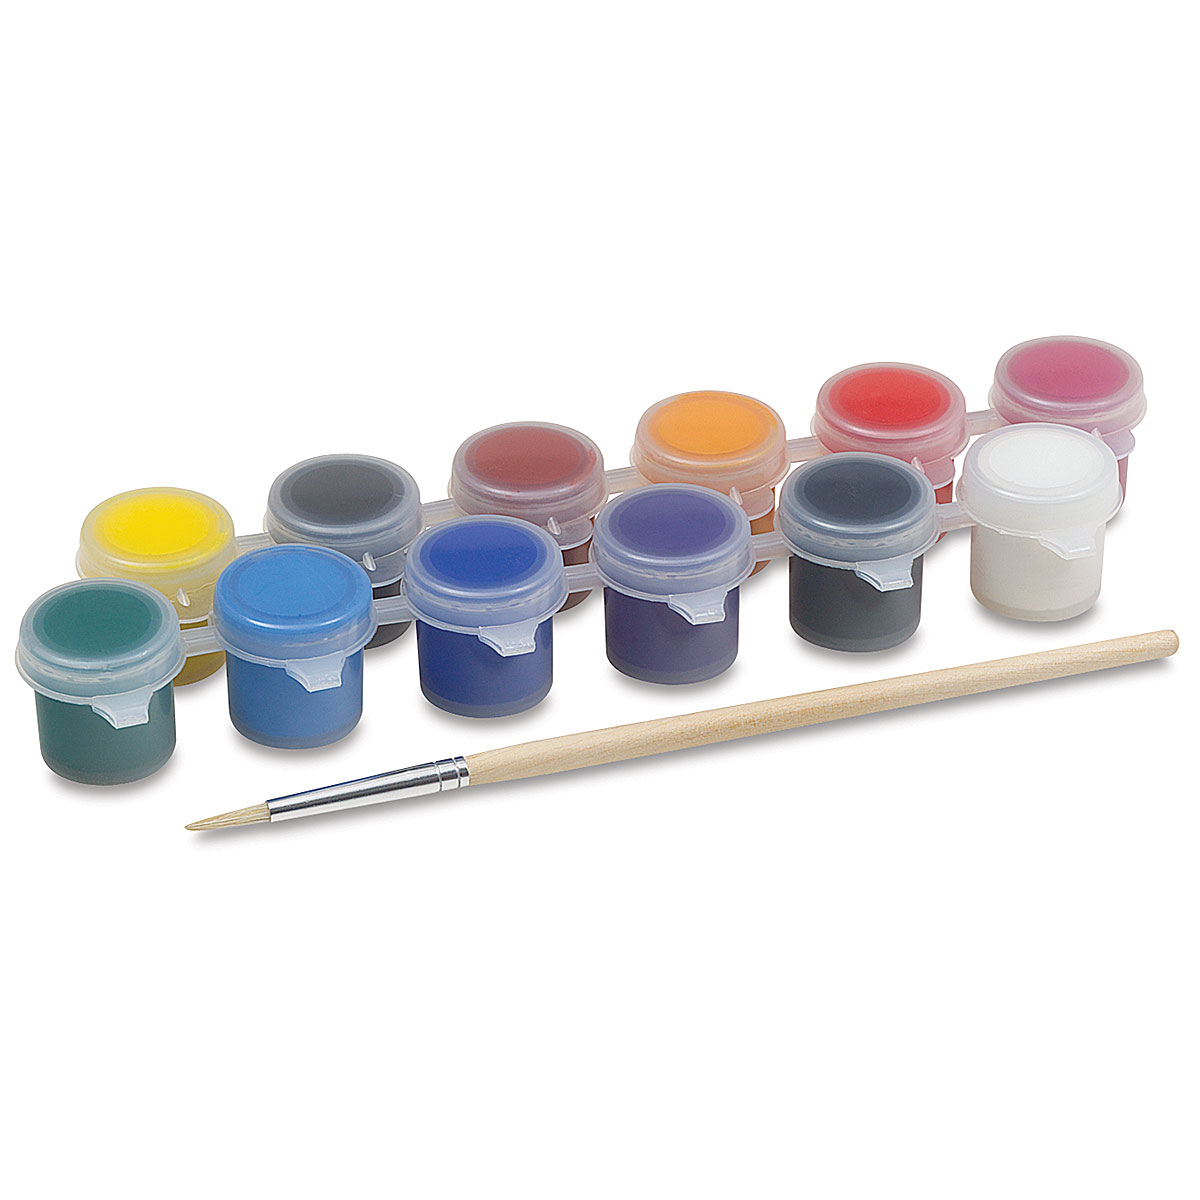 Liquitex Basics Acrylic Set - Paint Pot Set, .14 oz Pots